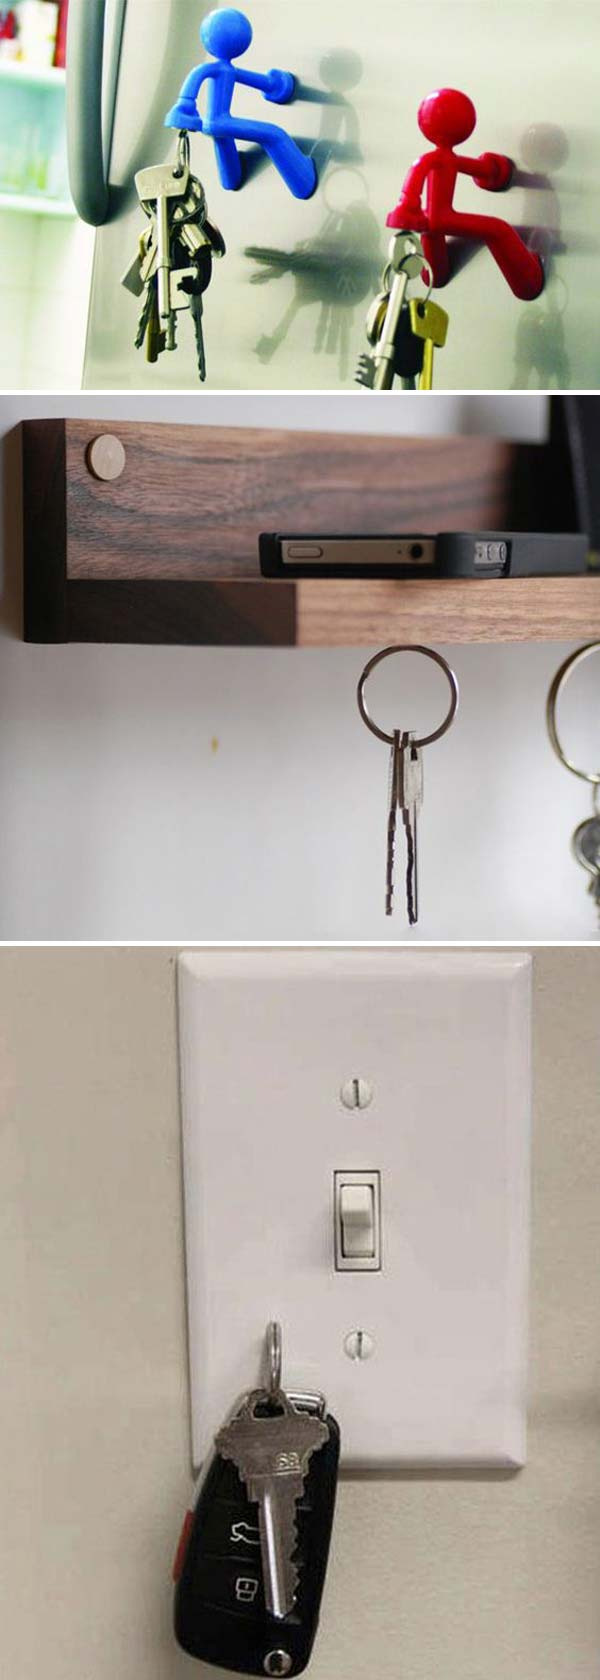 15 Diy Magnet Projects Will Make Your Life Much Fun And Easier Amazing Diy Interior Home Design